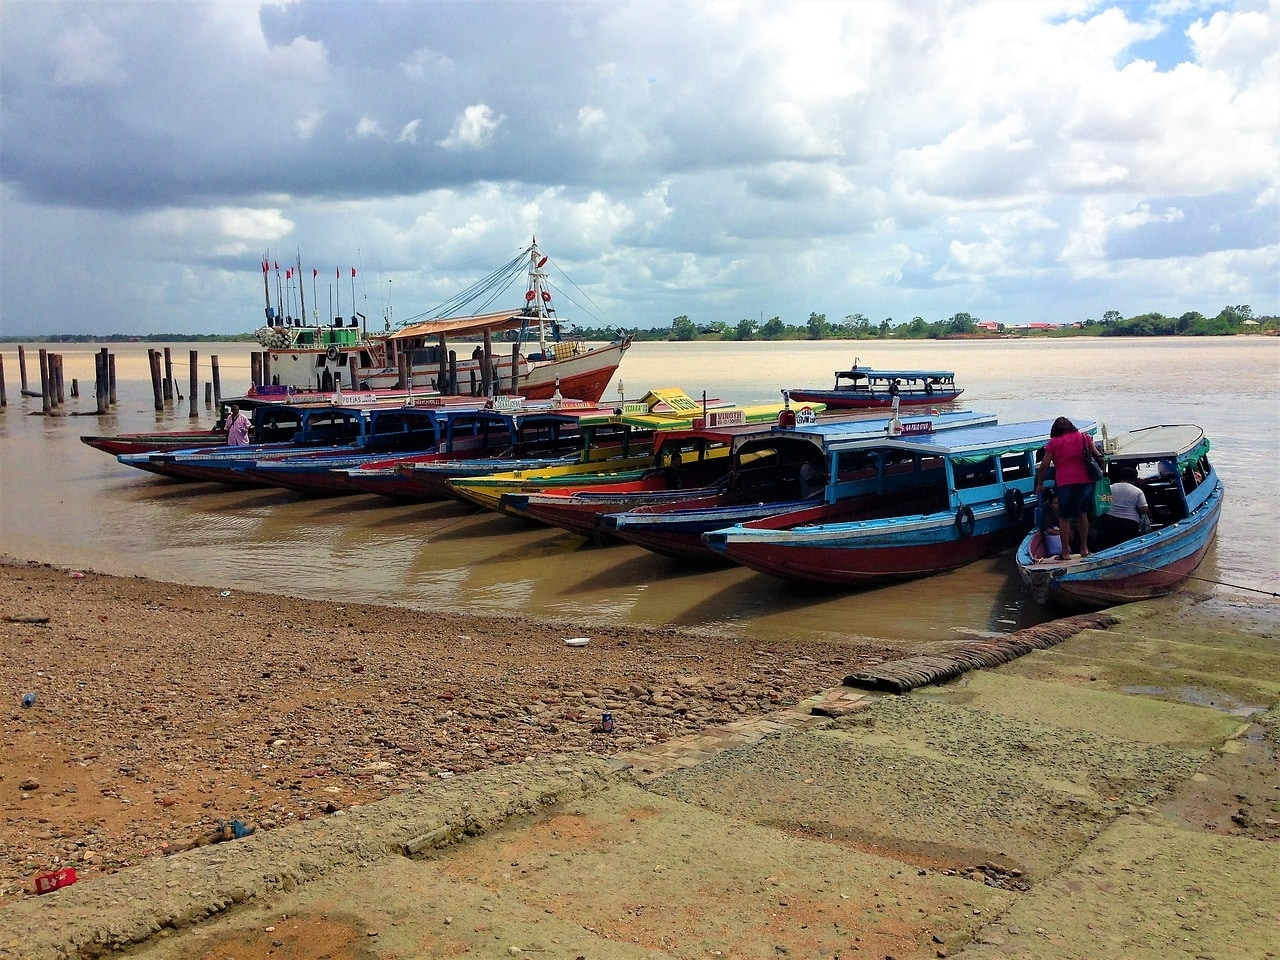 Boats on the water in Suriname